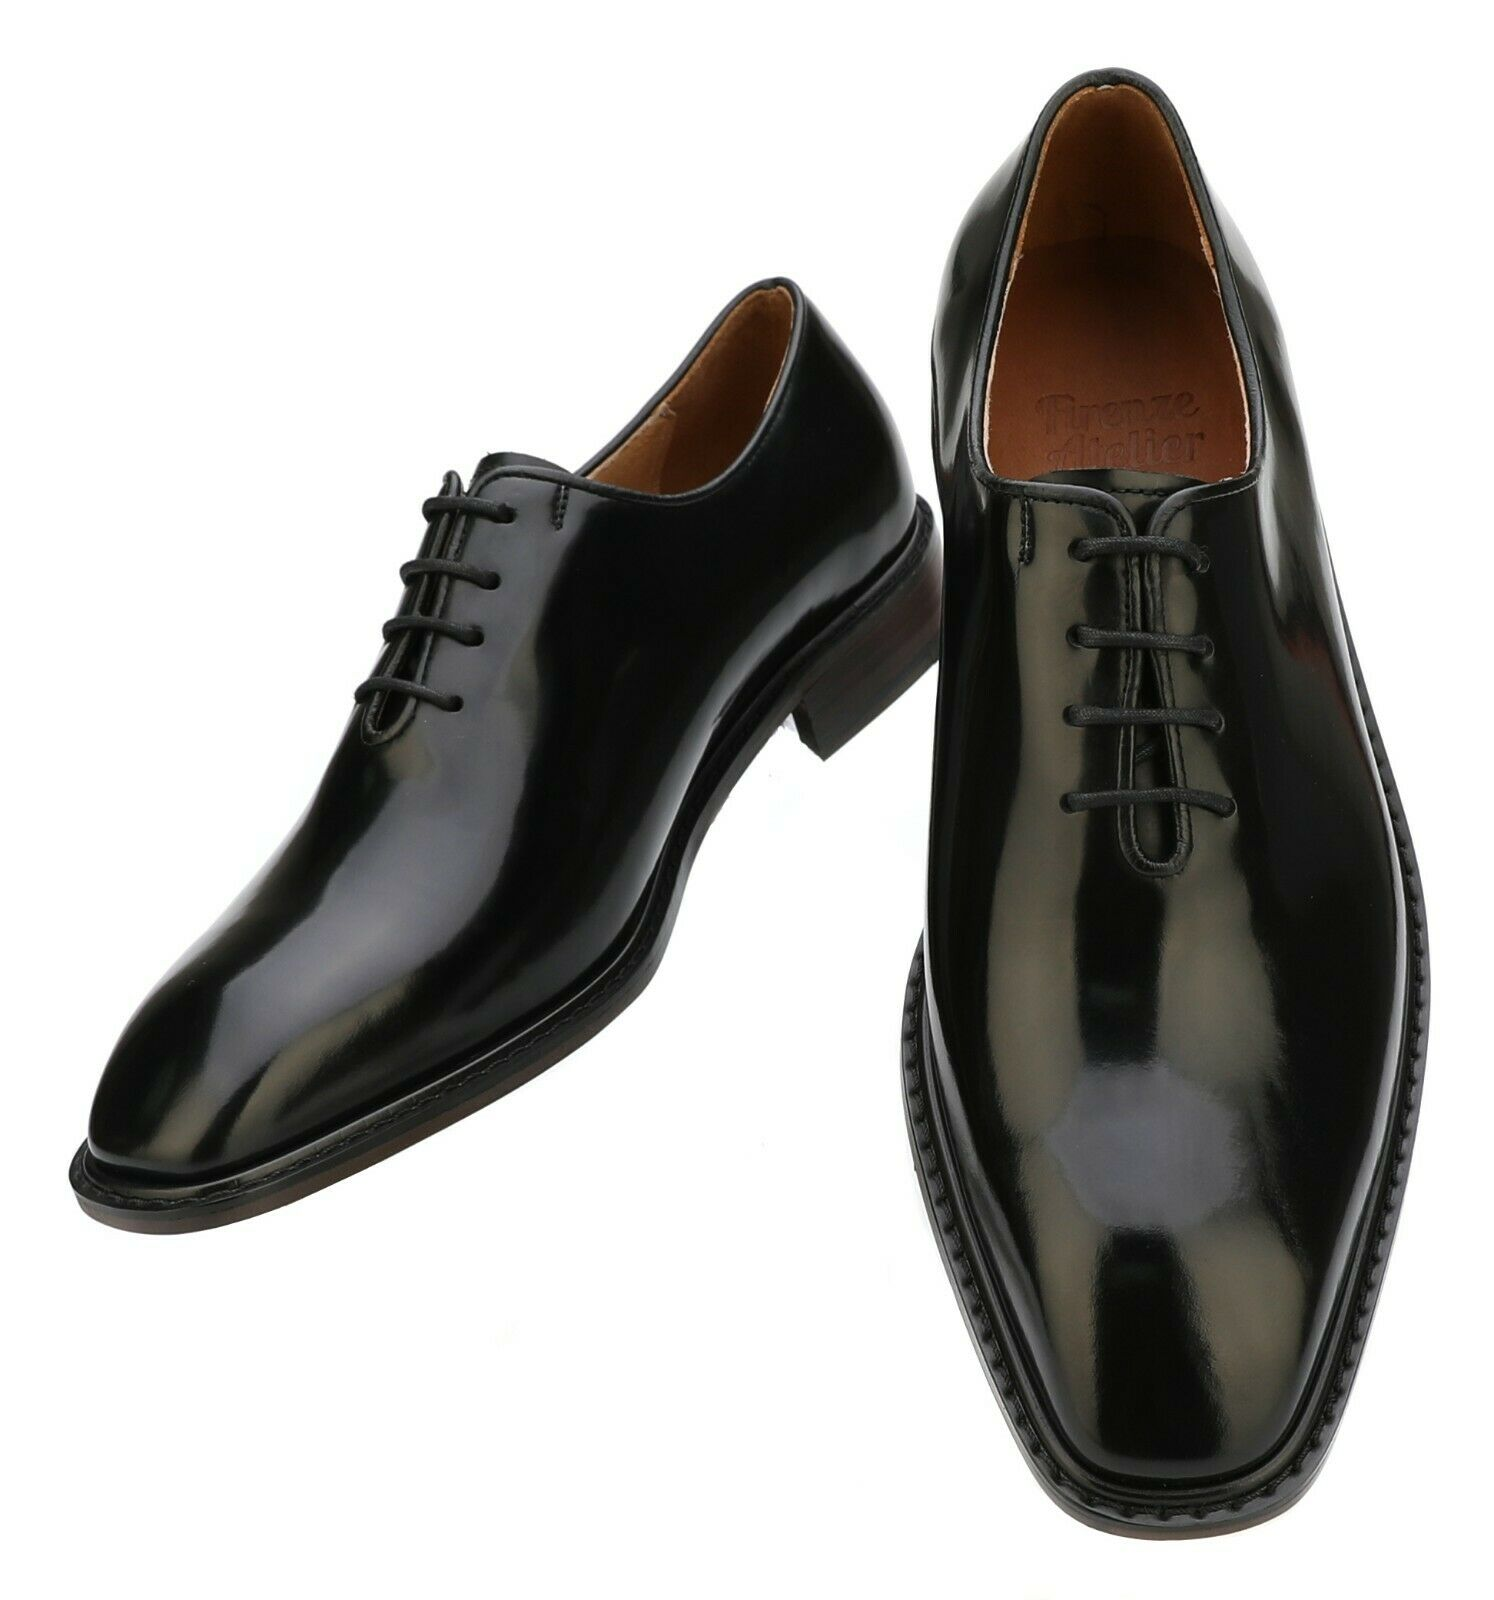 Firenze Atelier Men's Handmade Black Leather Wholecut Lace-up Oxford Derby shoes